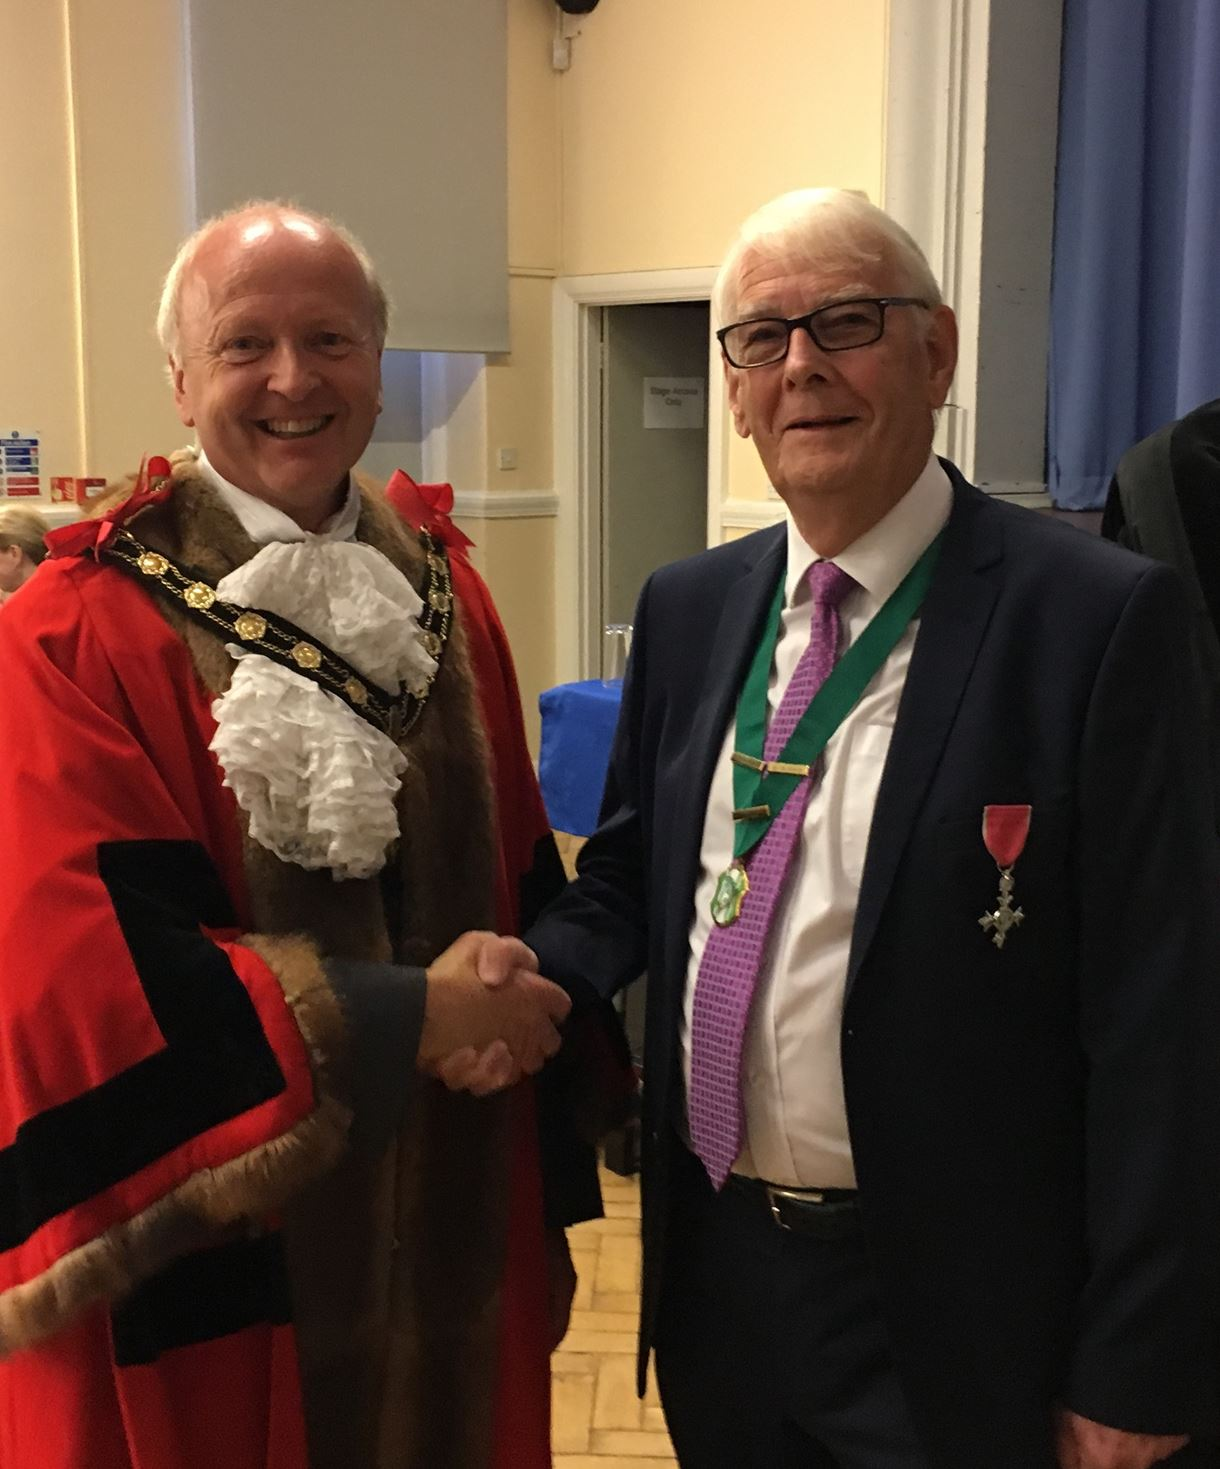 Mayor councillor Martin Hatley and Honorary Alderman, Mr Ian Carr MBE at the special council meeting.